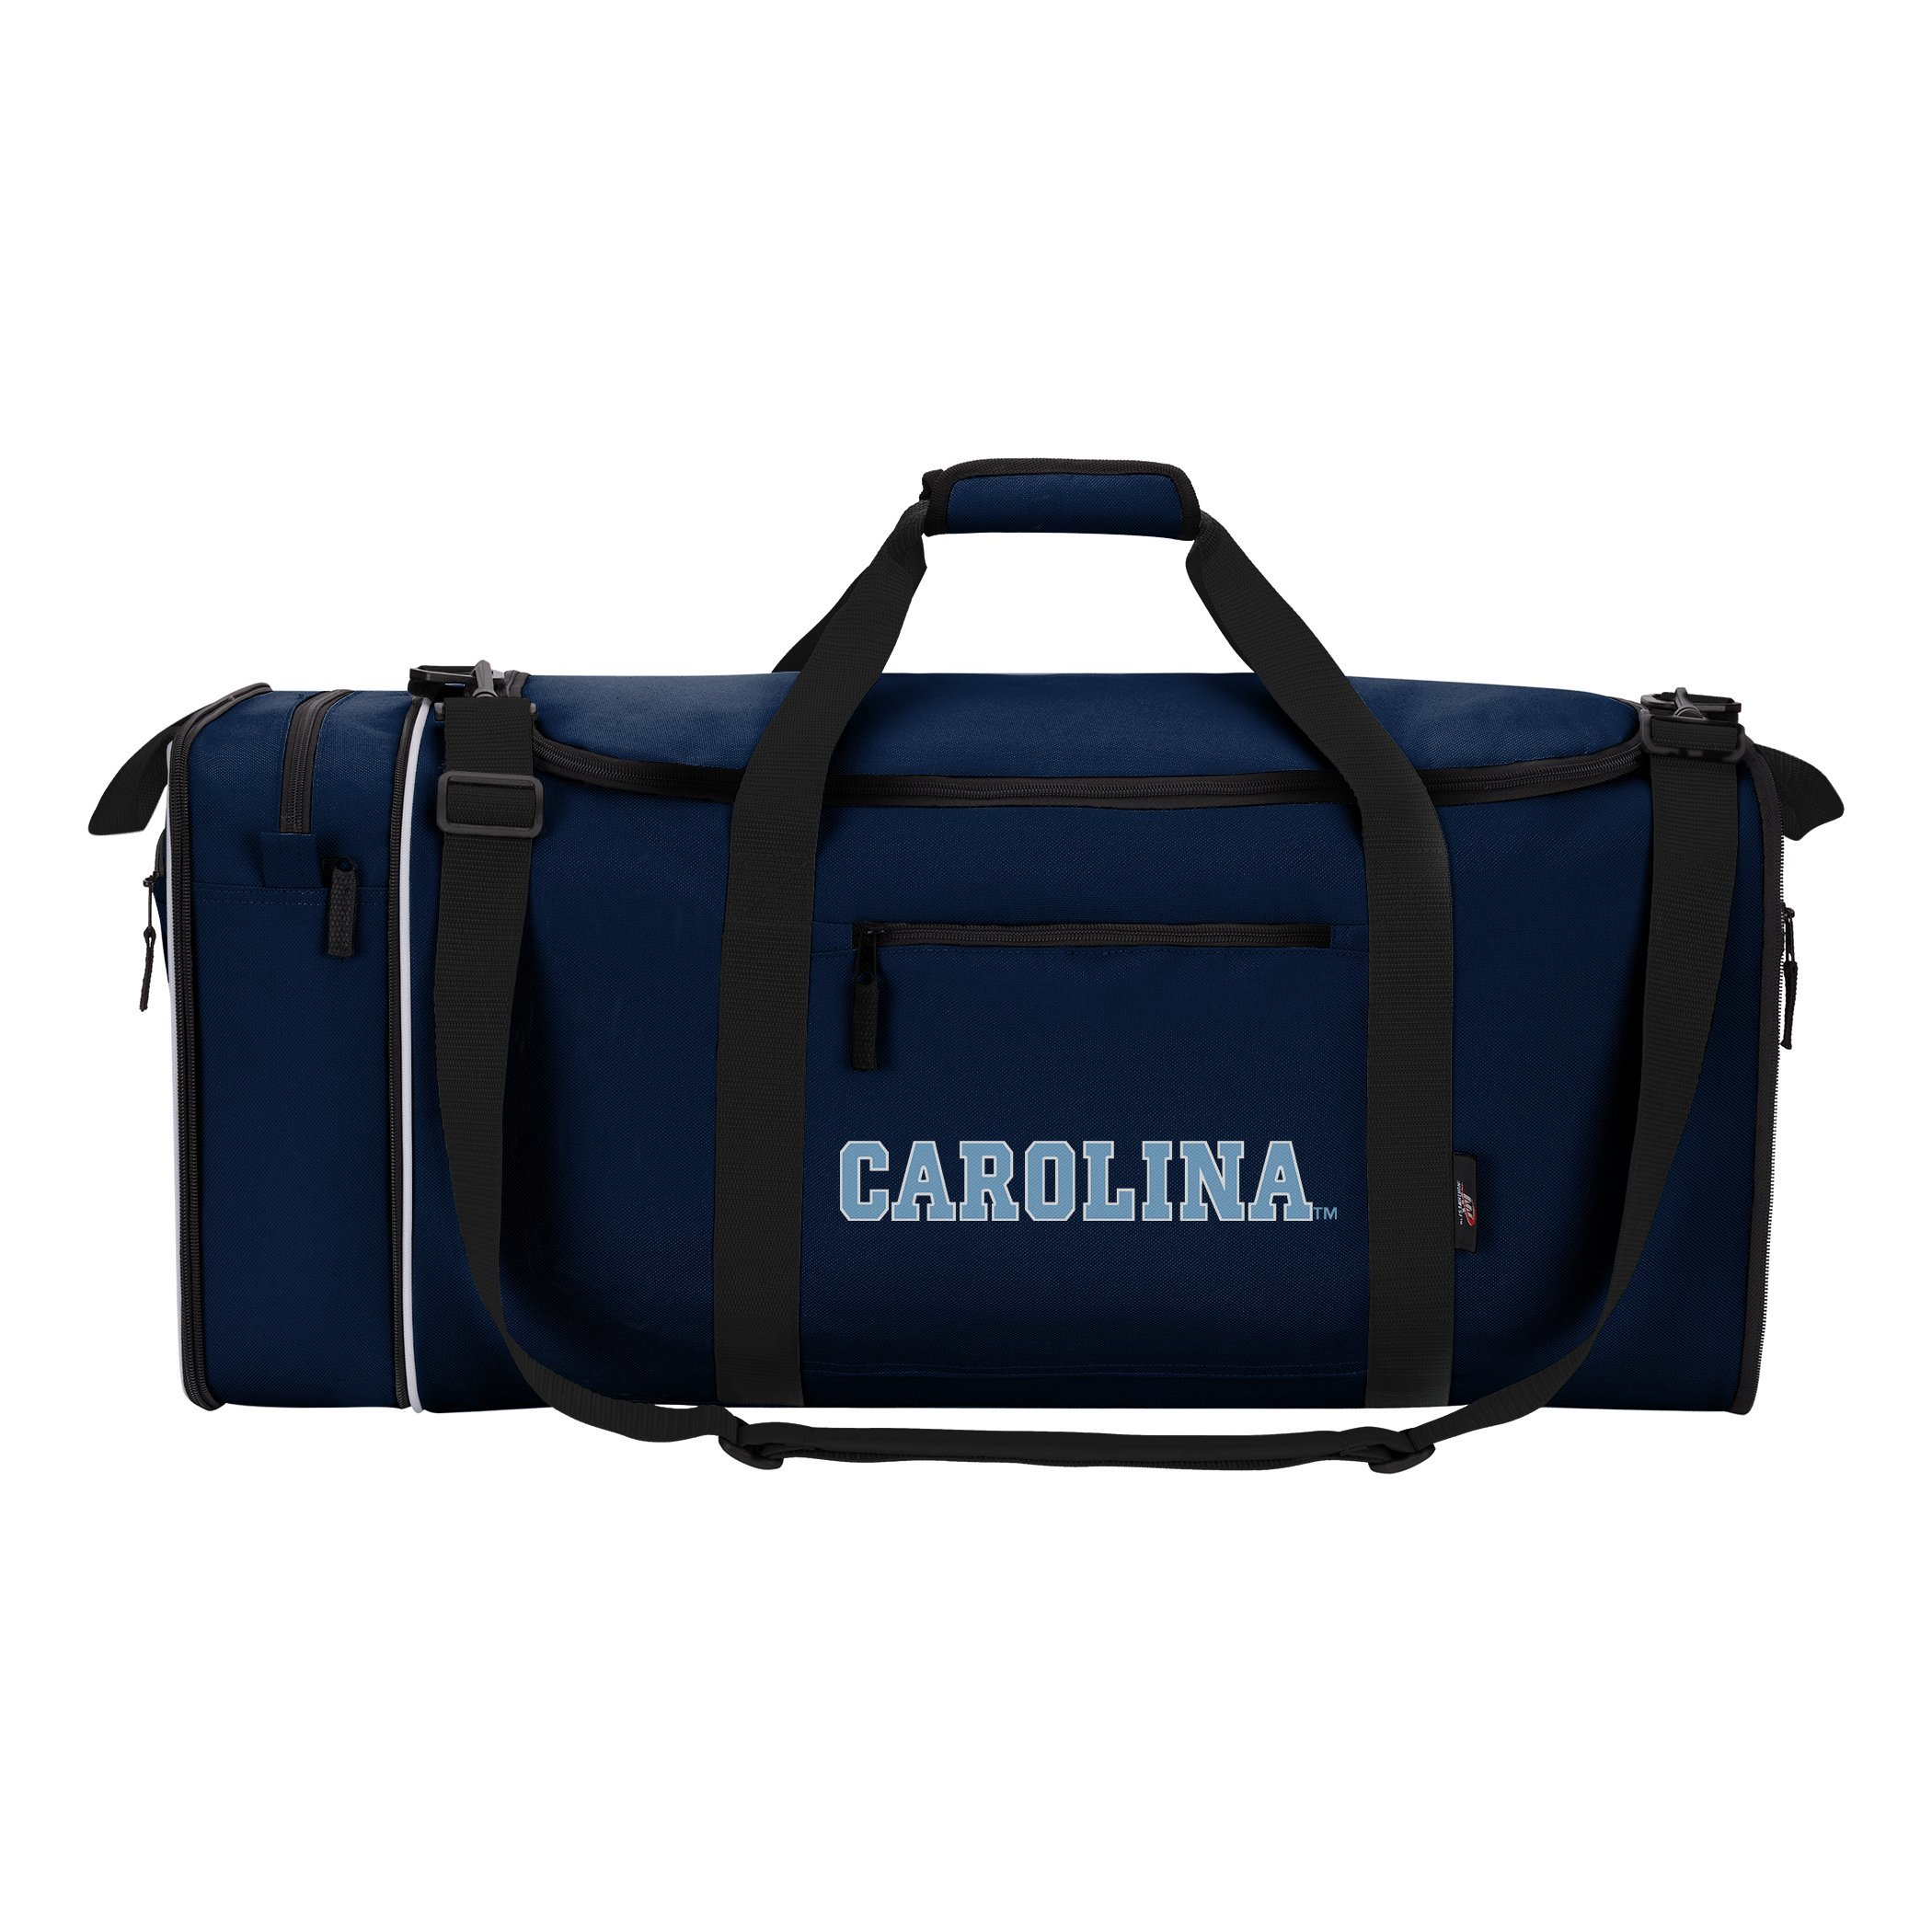 Officially Licensed NCAA North Carolina Tar Heels Steal Duffel Bag by The Northwest Company (Image #1)